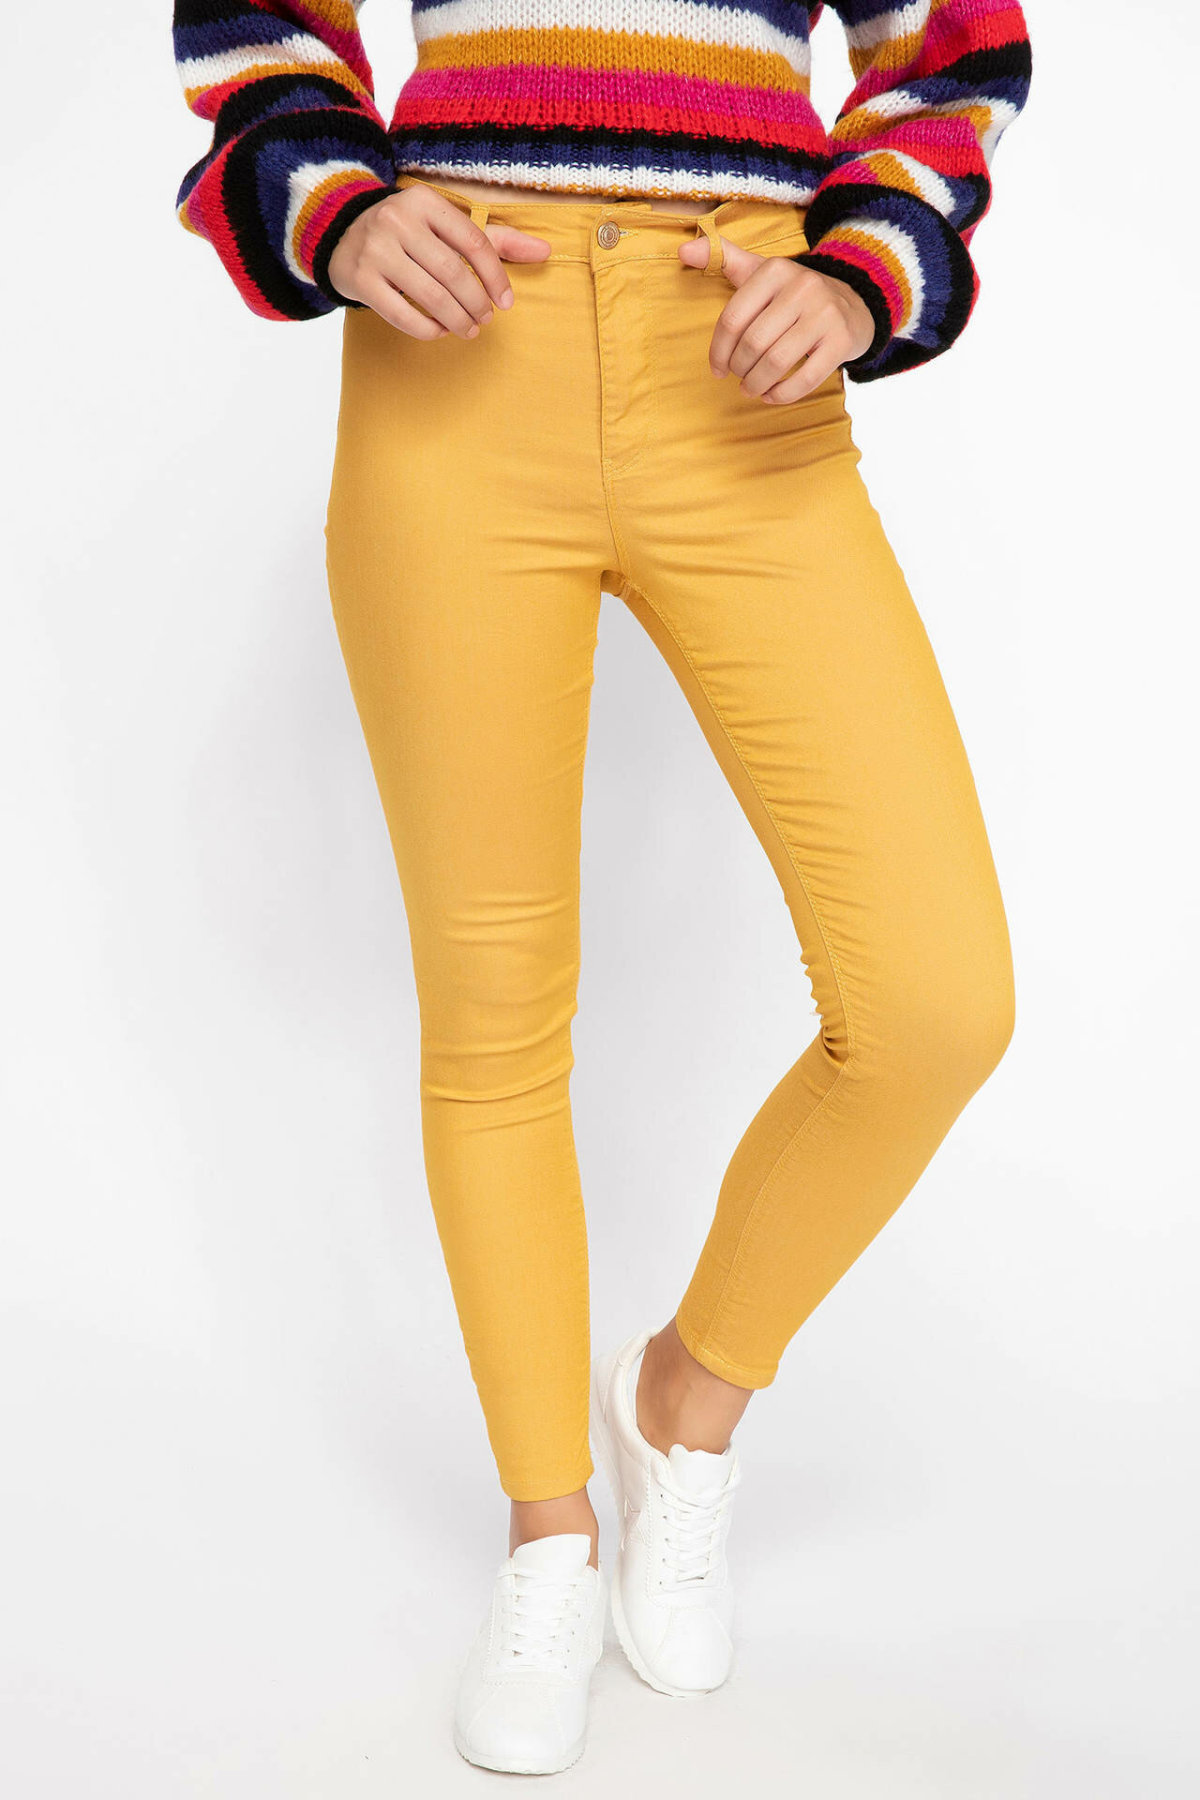 DeFacto Woman Trousers Women Solid Color Fit Body Pencil Pants Yellow Blue Green Female Bottoms Slim Trousers-J5604AZ18AU